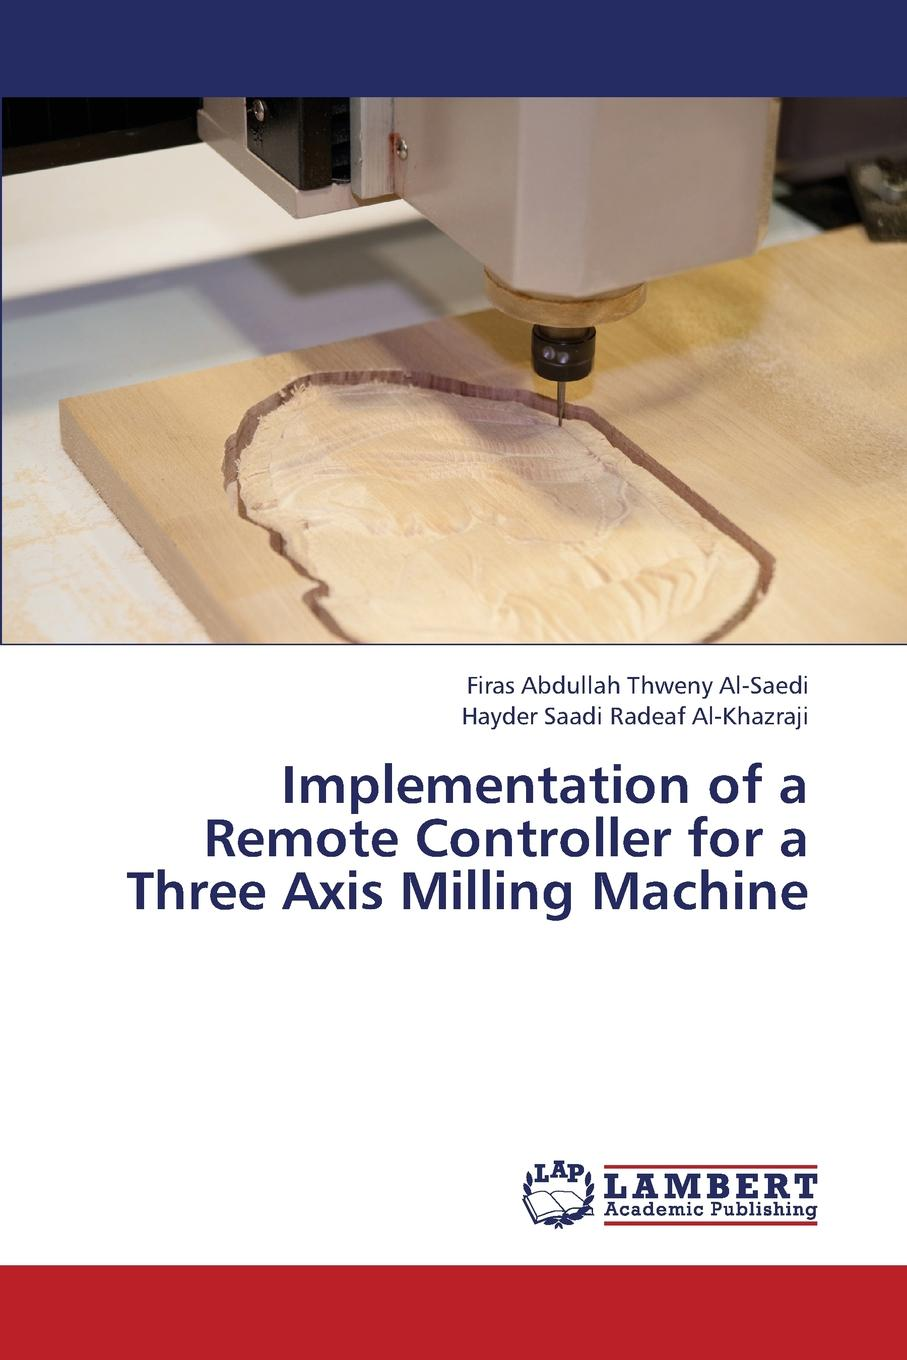 Al-Saedi Firas Abdullah Thweny, Al-Khazraji Hayder Saadi Radeaf Implementation of a Remote Controller for a Three Axis Milling Machine cnc 3018 grbl control diy cnc engraving machine 3 axis pcb milling machine wood router laser engraving best advanced toys